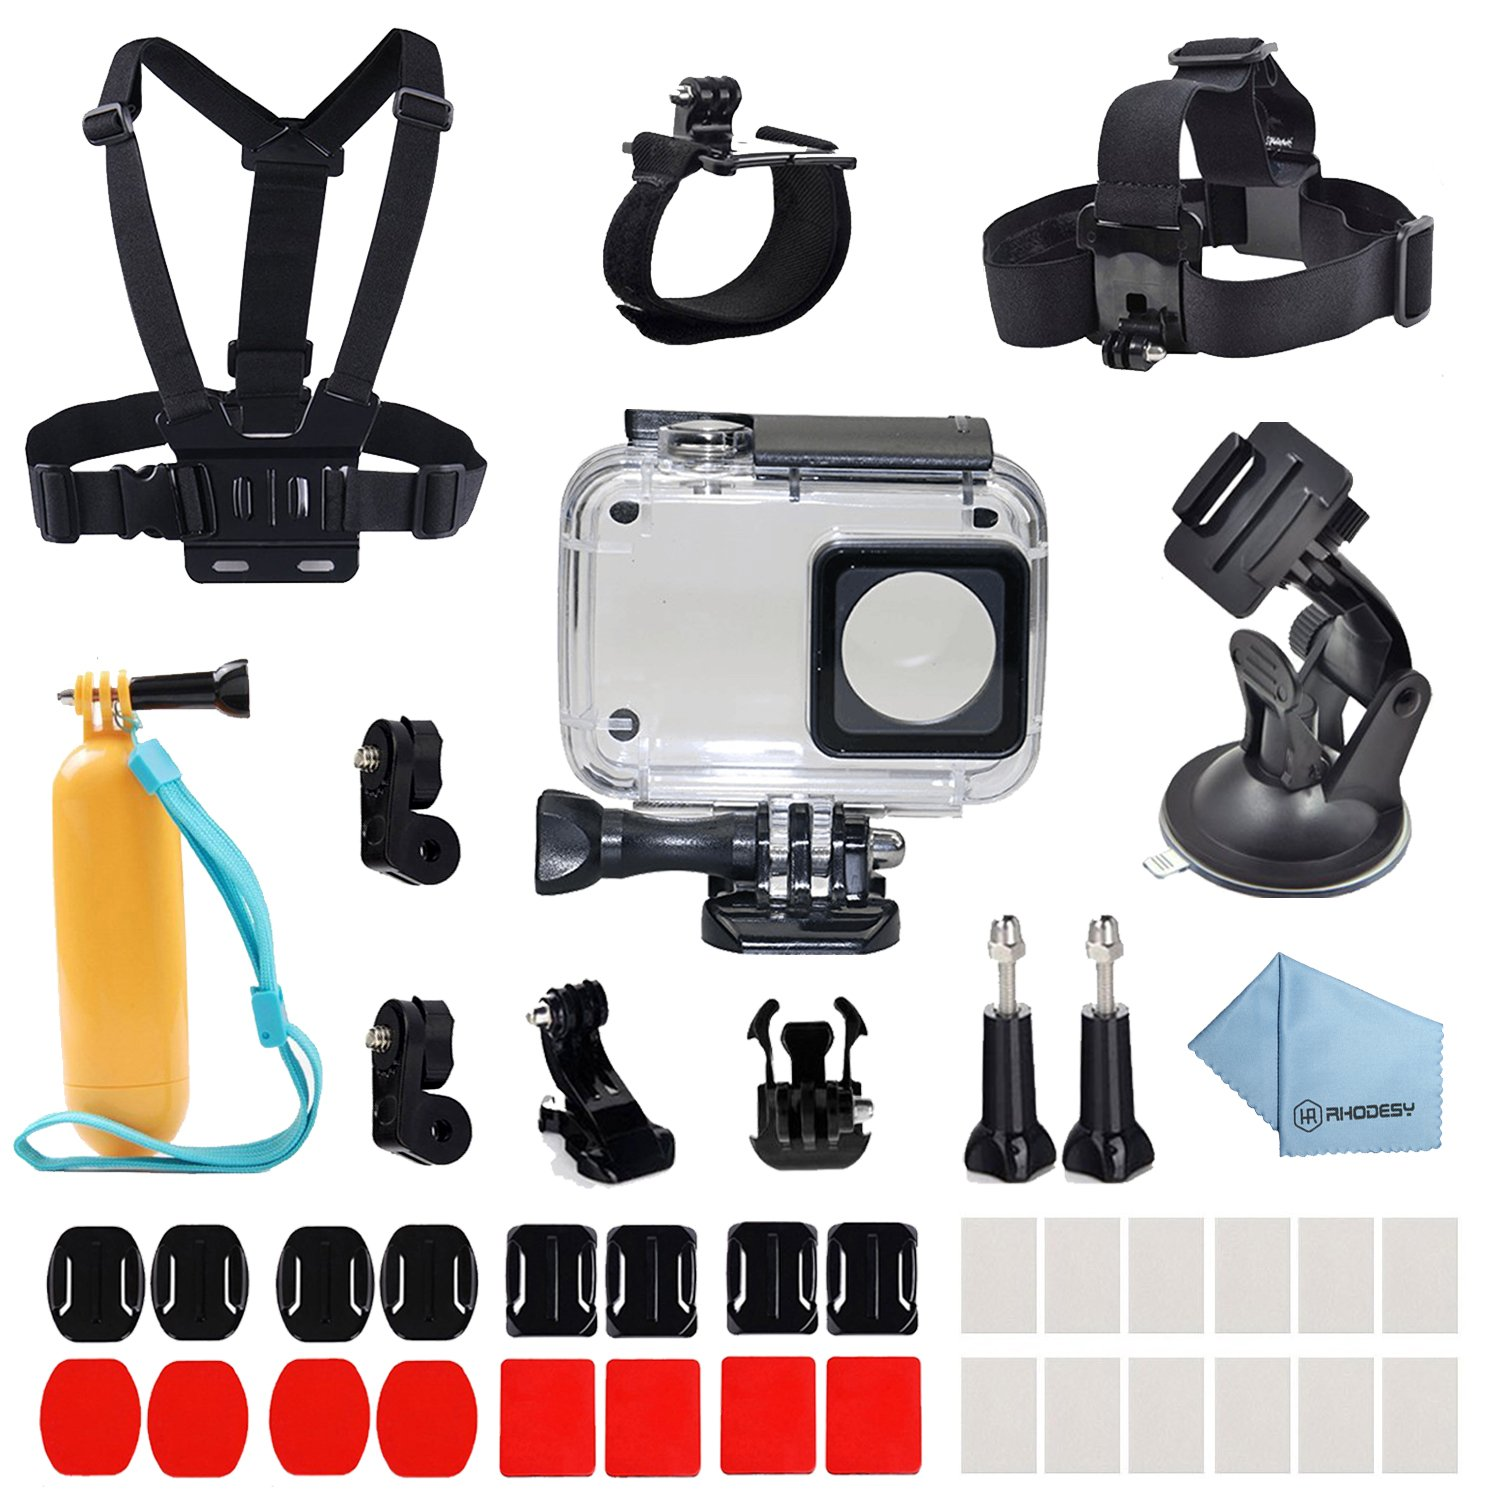 Rhodesy 41 in 1 Xiaomi Yi 4K/4K+ Protective Waterproof Housing Case Accessories Bundle for Xiaomi Yi 4K/4K+ Action Camera 2 Rhodesy Tech MK041